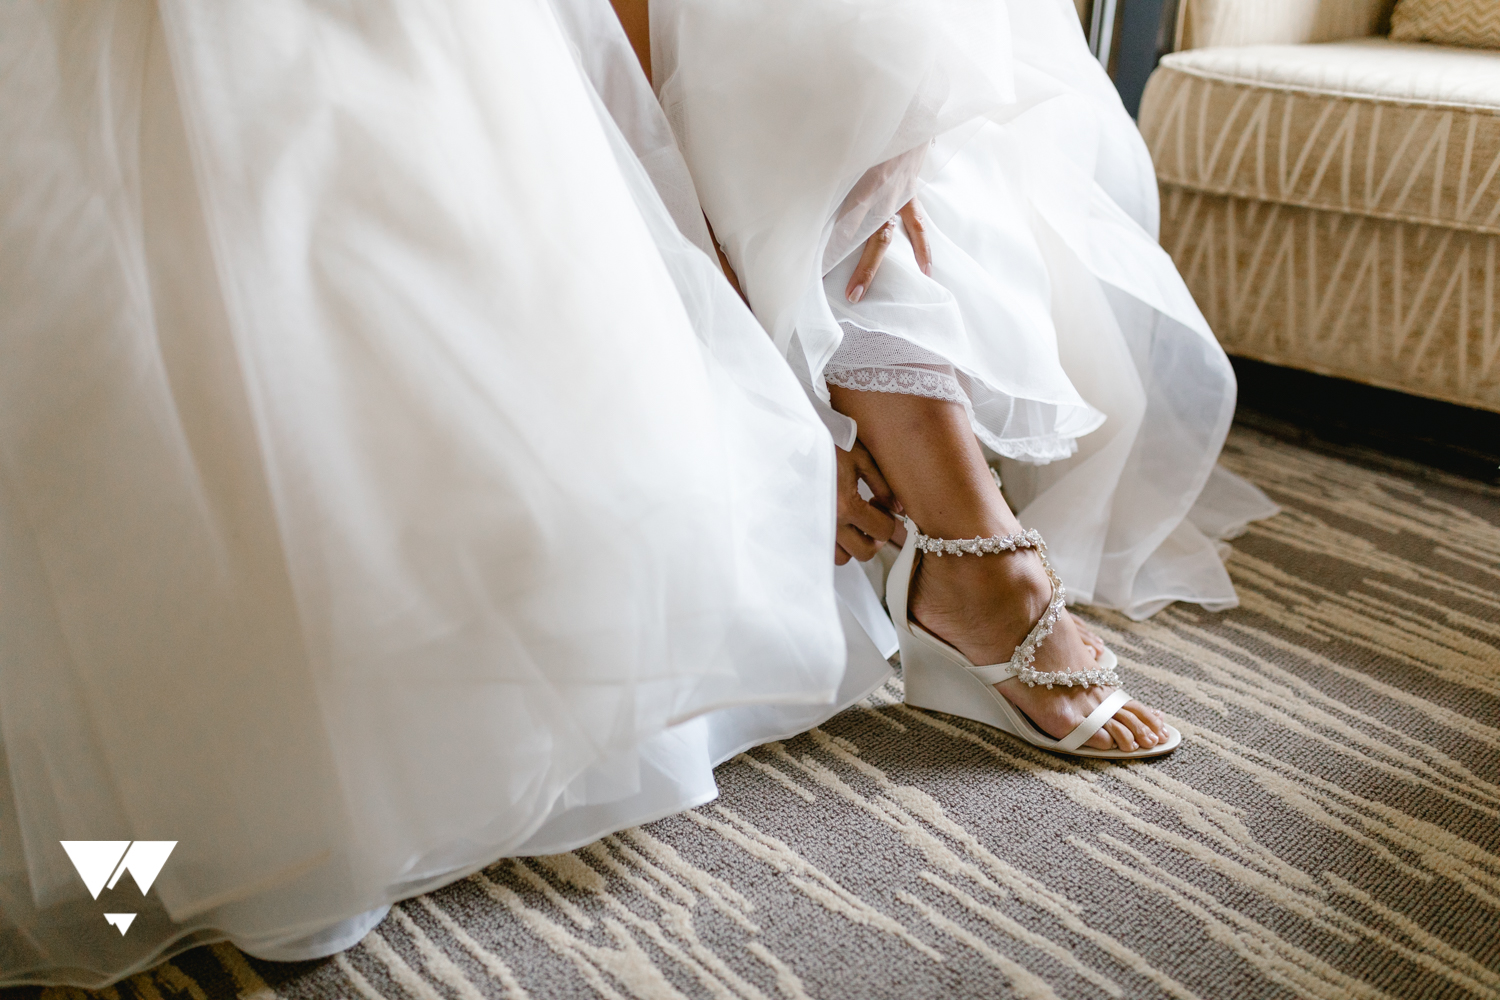 herastudios_wedding_nicole_michael_hera_selects_web-24.jpg